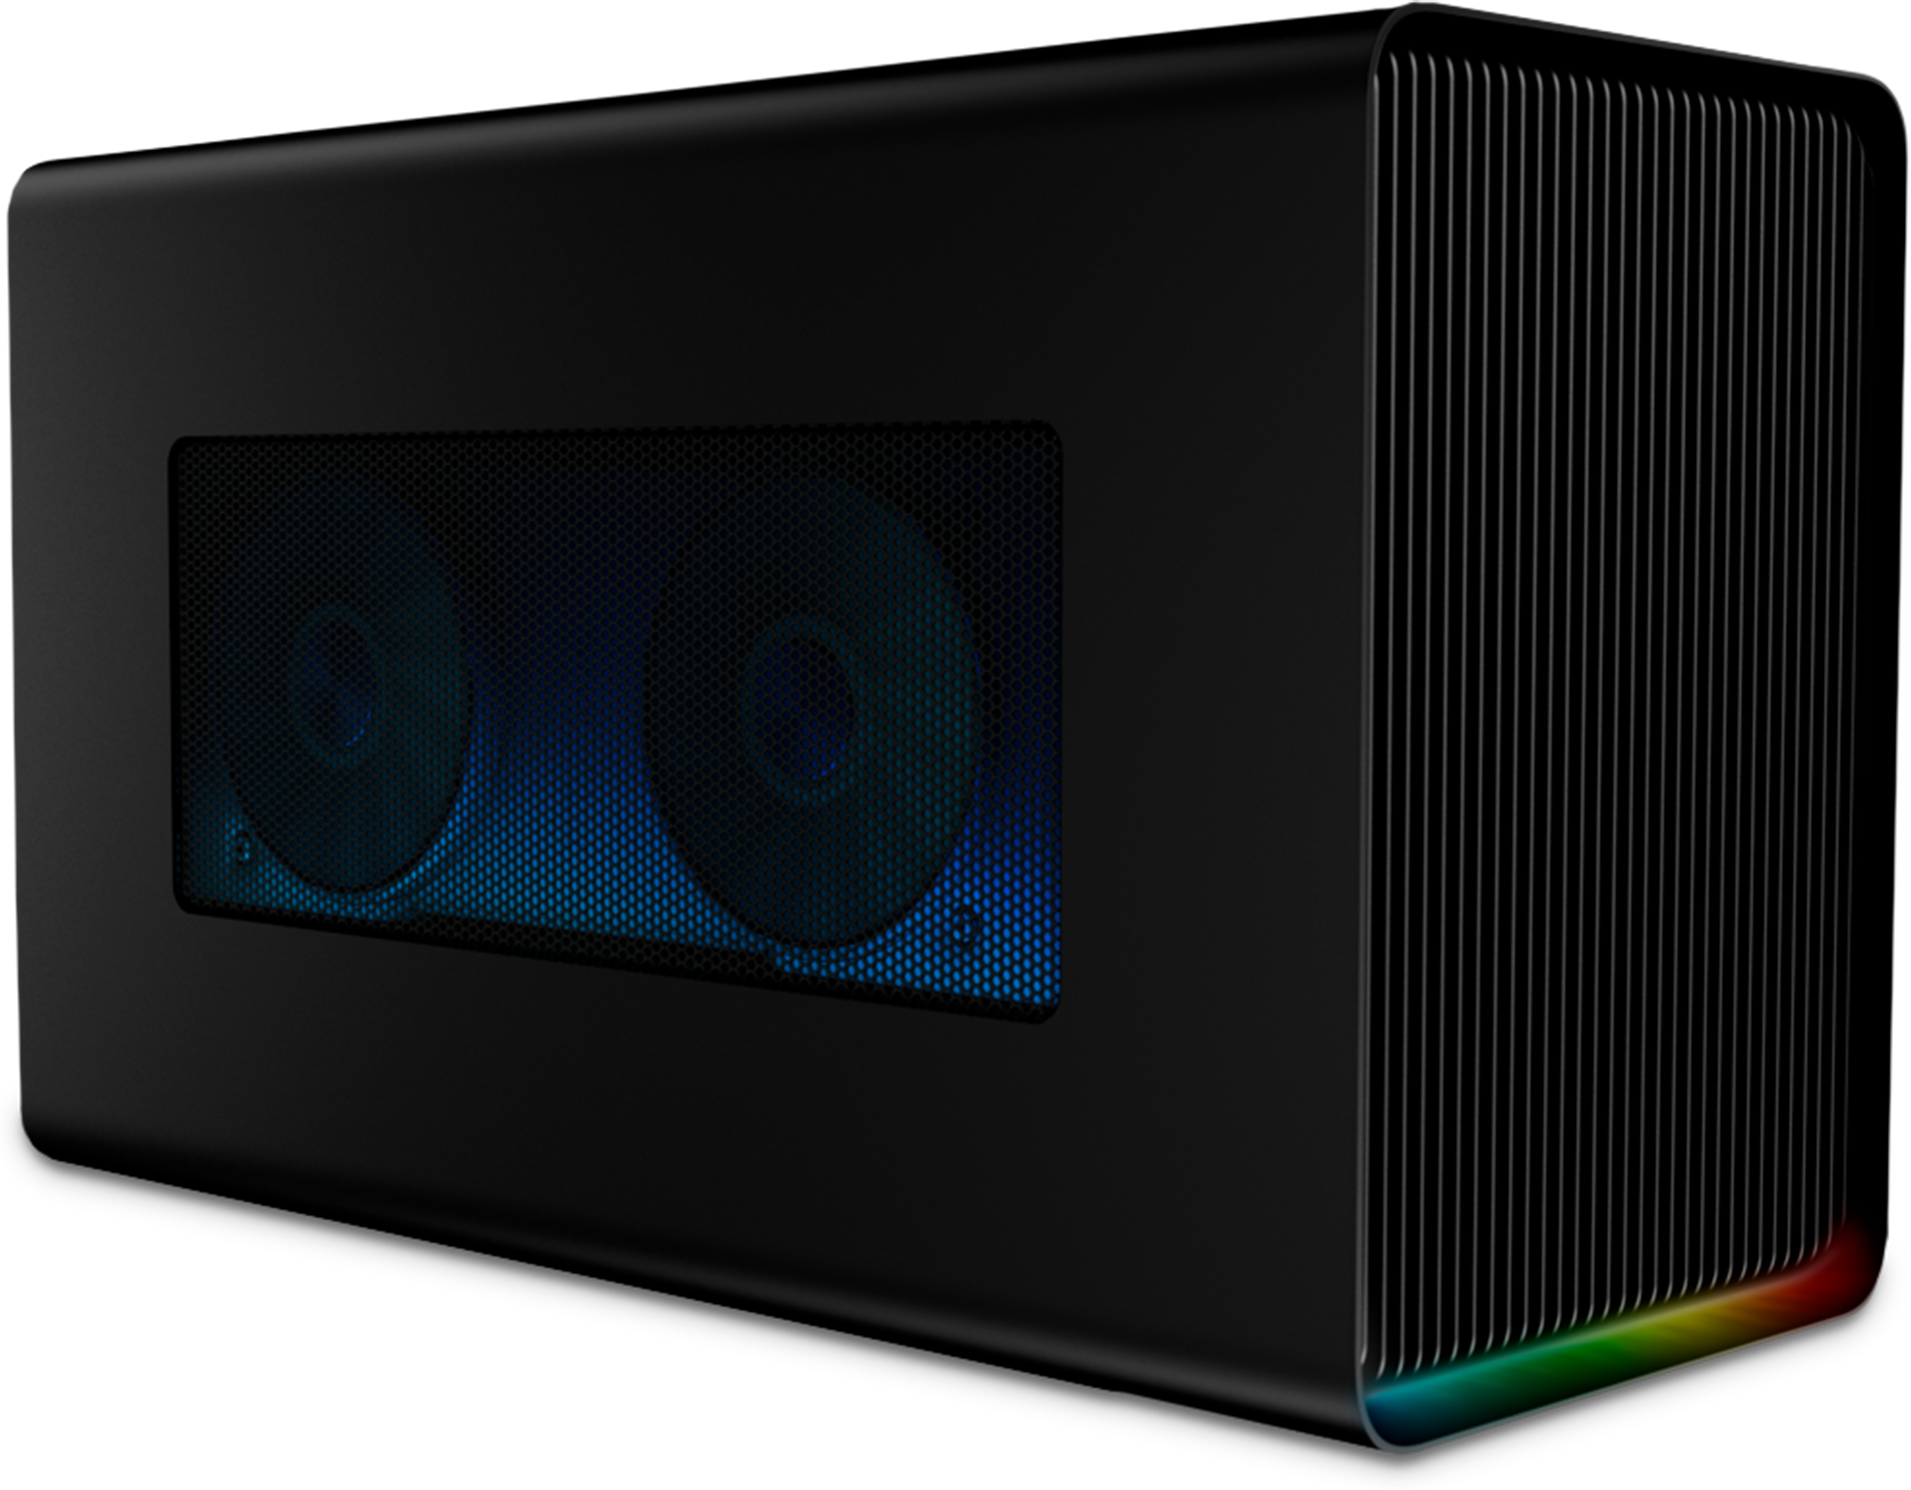 Razer Core X Chroma External Graphics Enclosure Transform your laptop into a desktop-class gaming powerhouse with this advanced graphics enclosure, complete with gaming-grade power, ports and Razer Chroma.